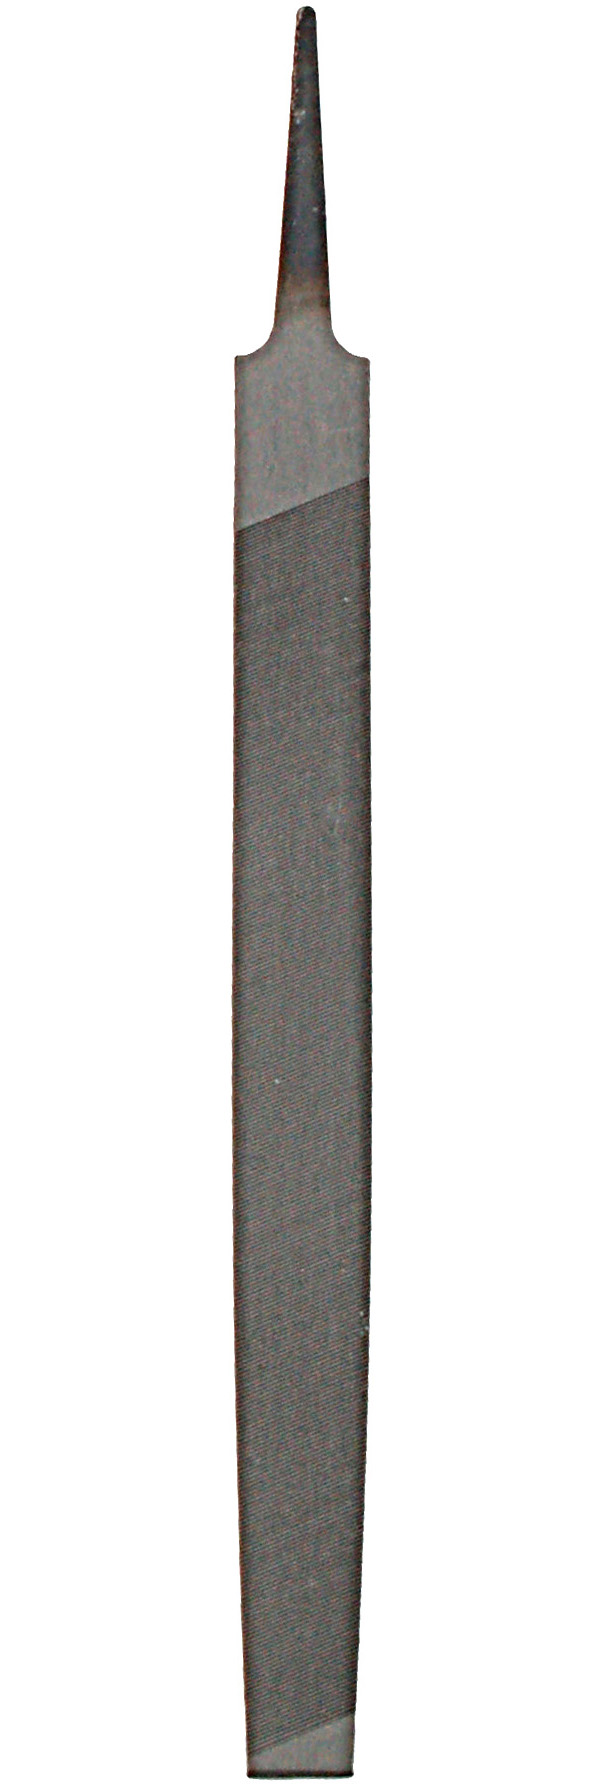 Zenport Sharpening File AGF200 Mill Bastard File, 8-Inch (200 mm), for sharpening pruners and knives